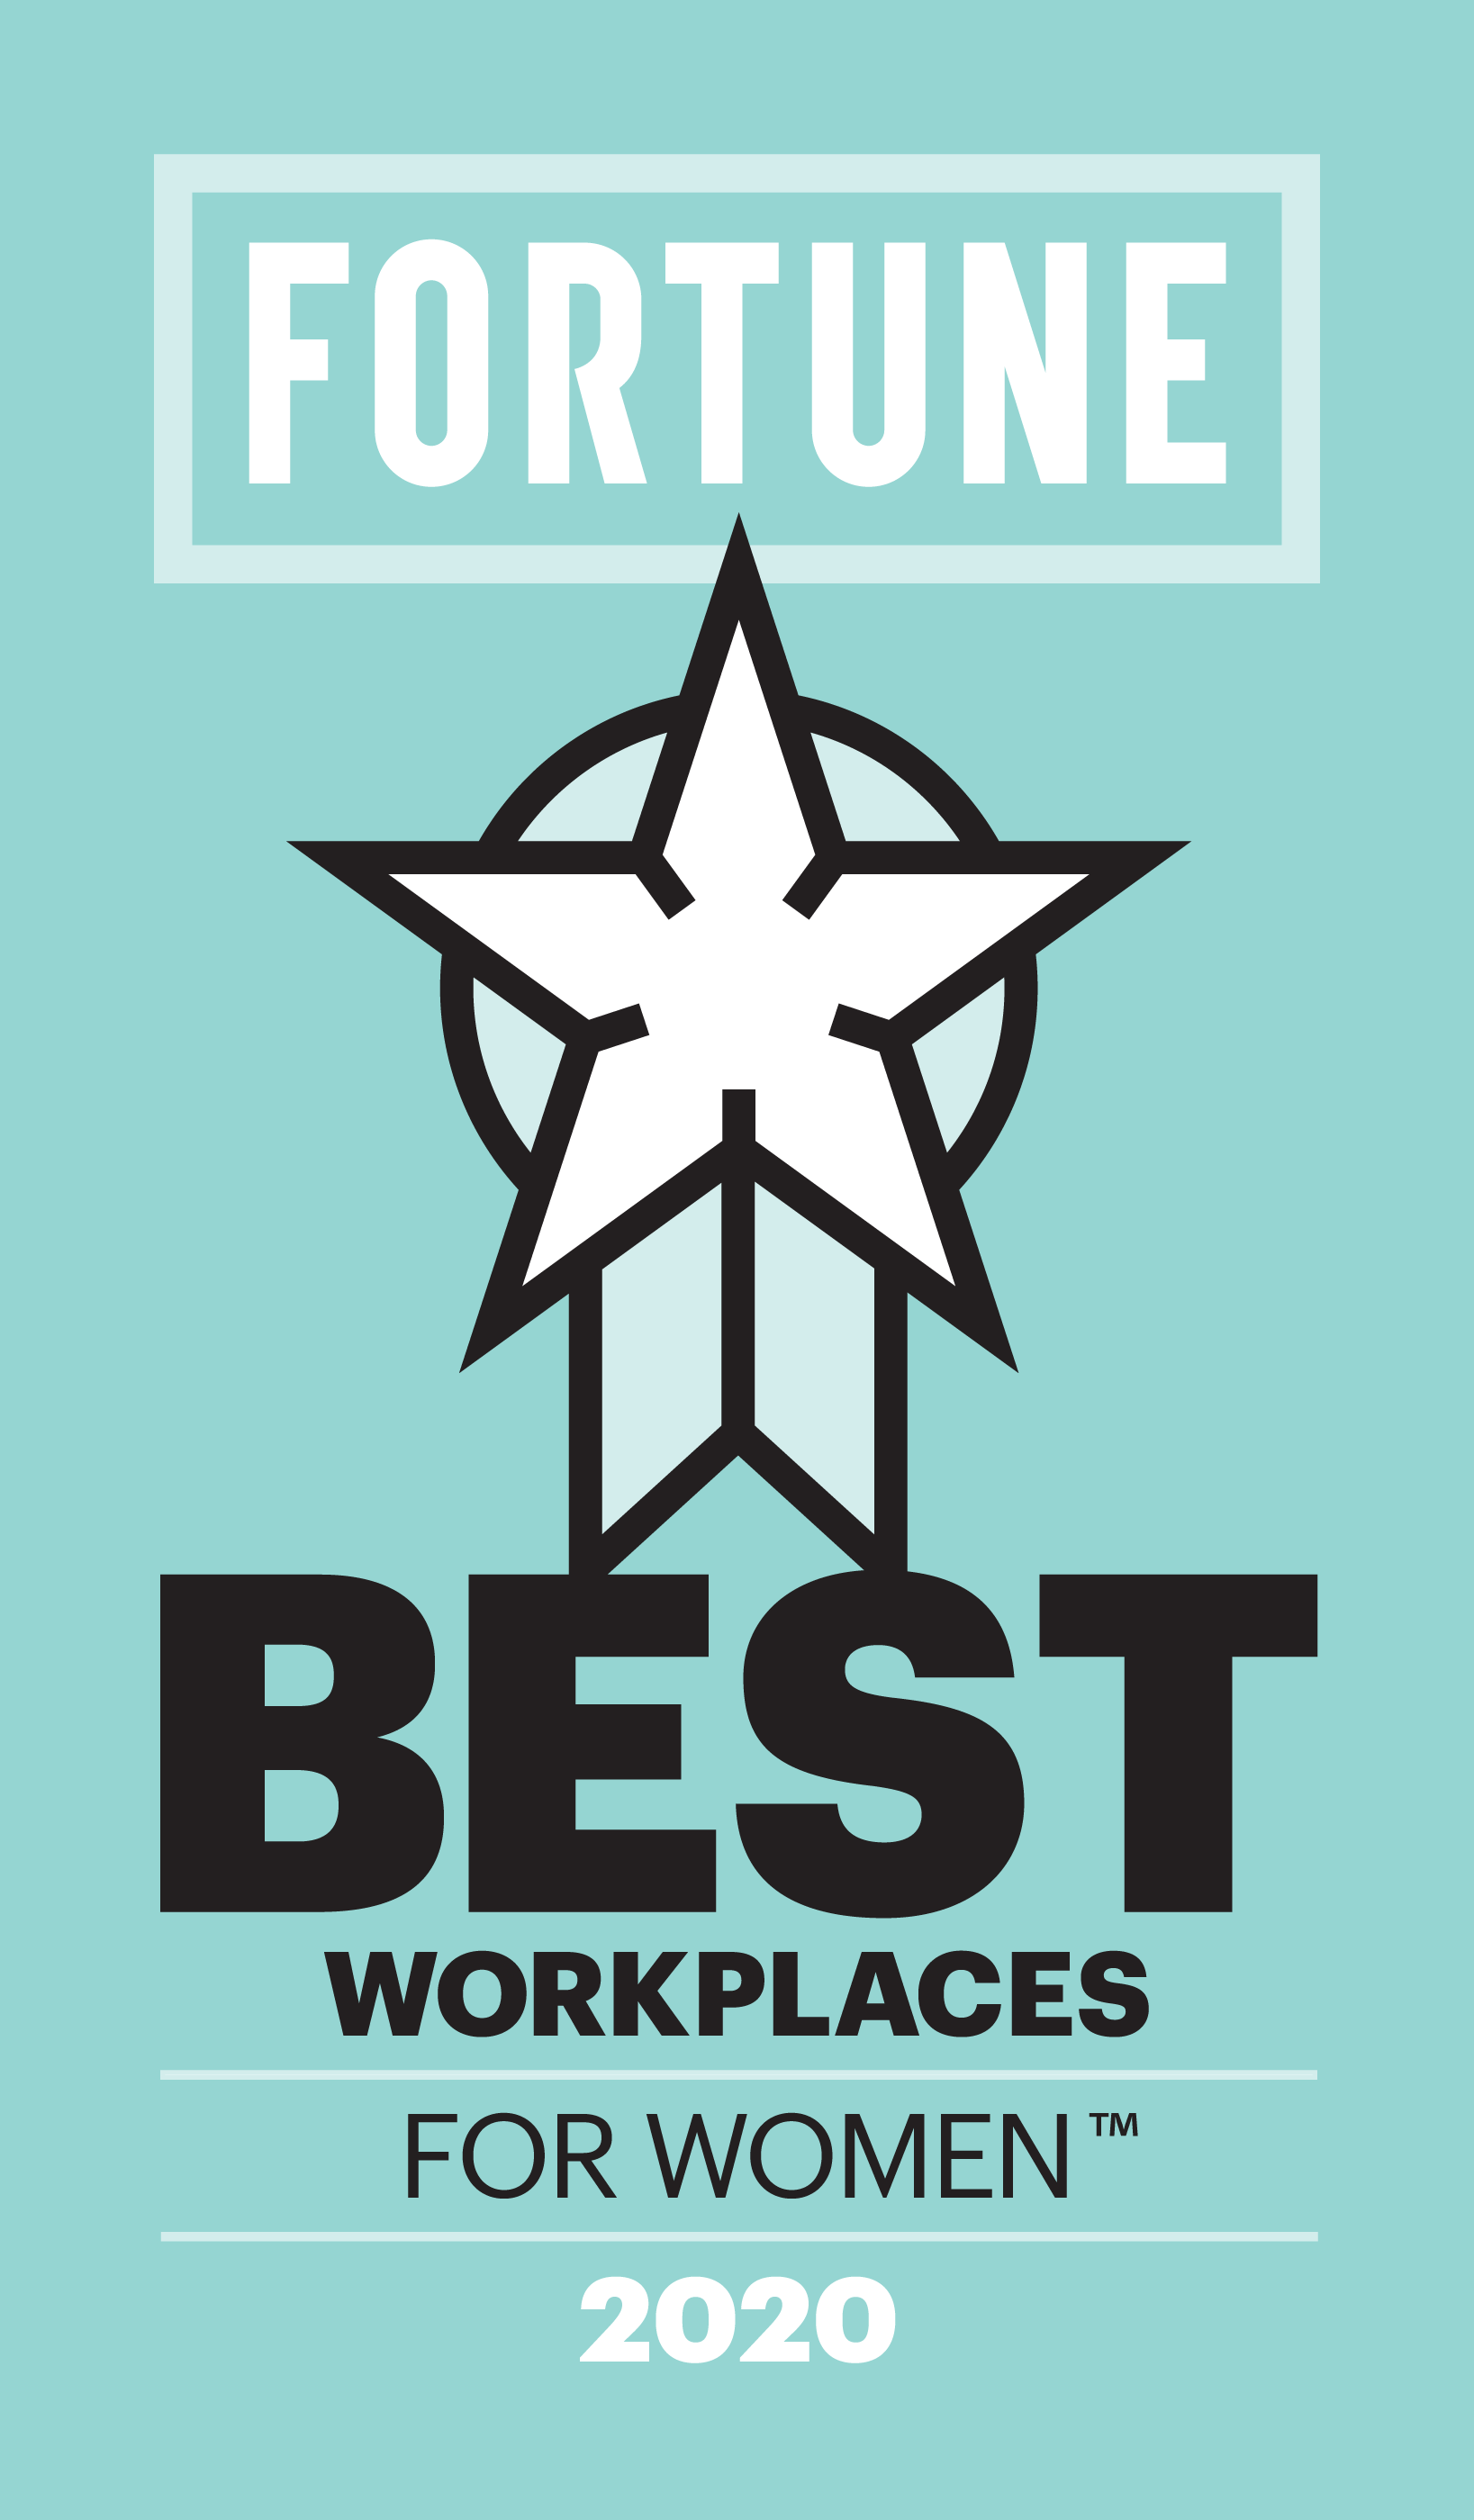 Fortune Best Workplace For Women 2020 Badge